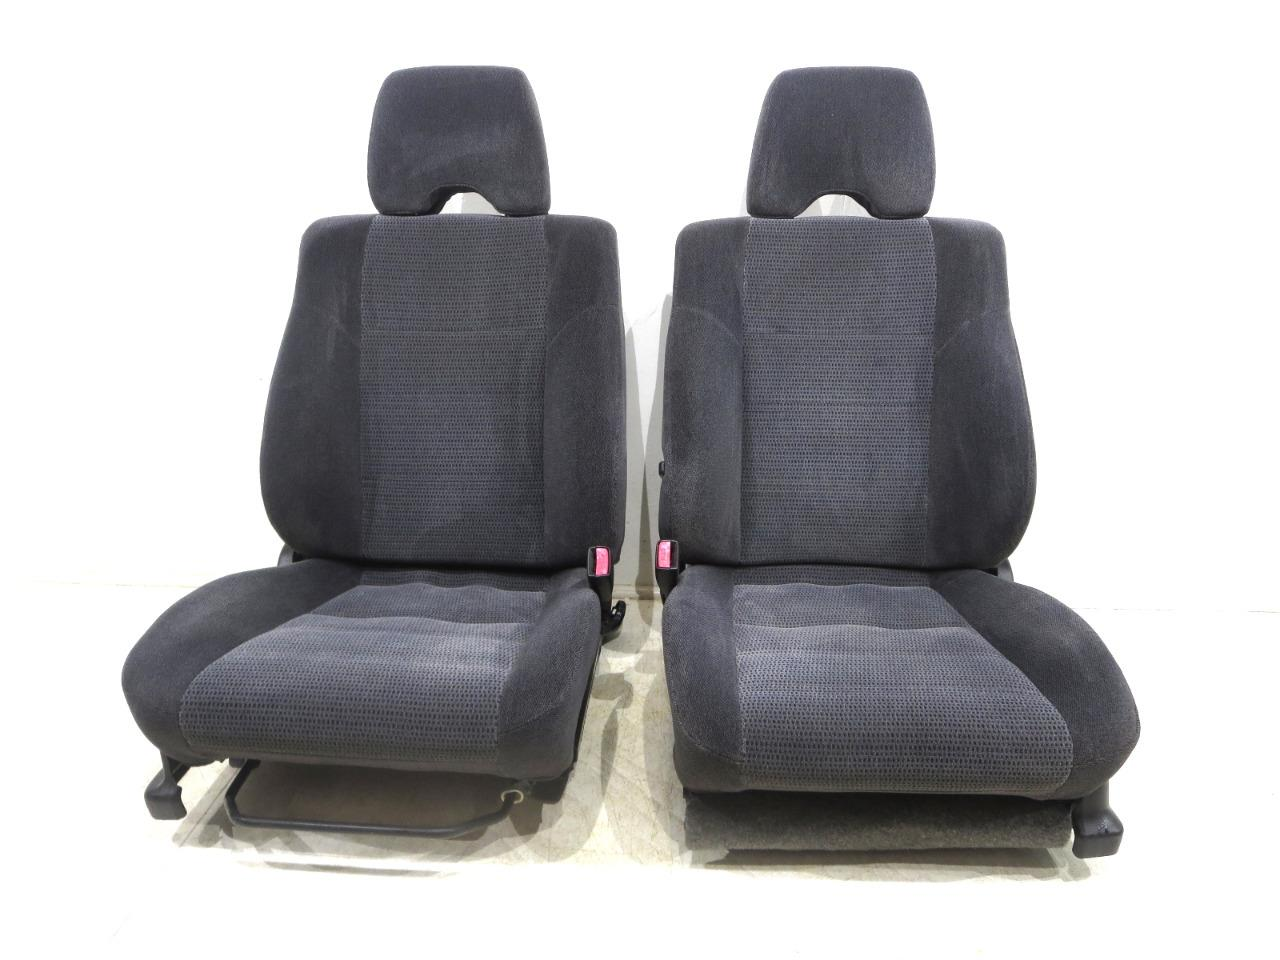 Subaru Outback Heated Cloth Oem Seats 1999 2000 2001 2002 2003 2004 ...